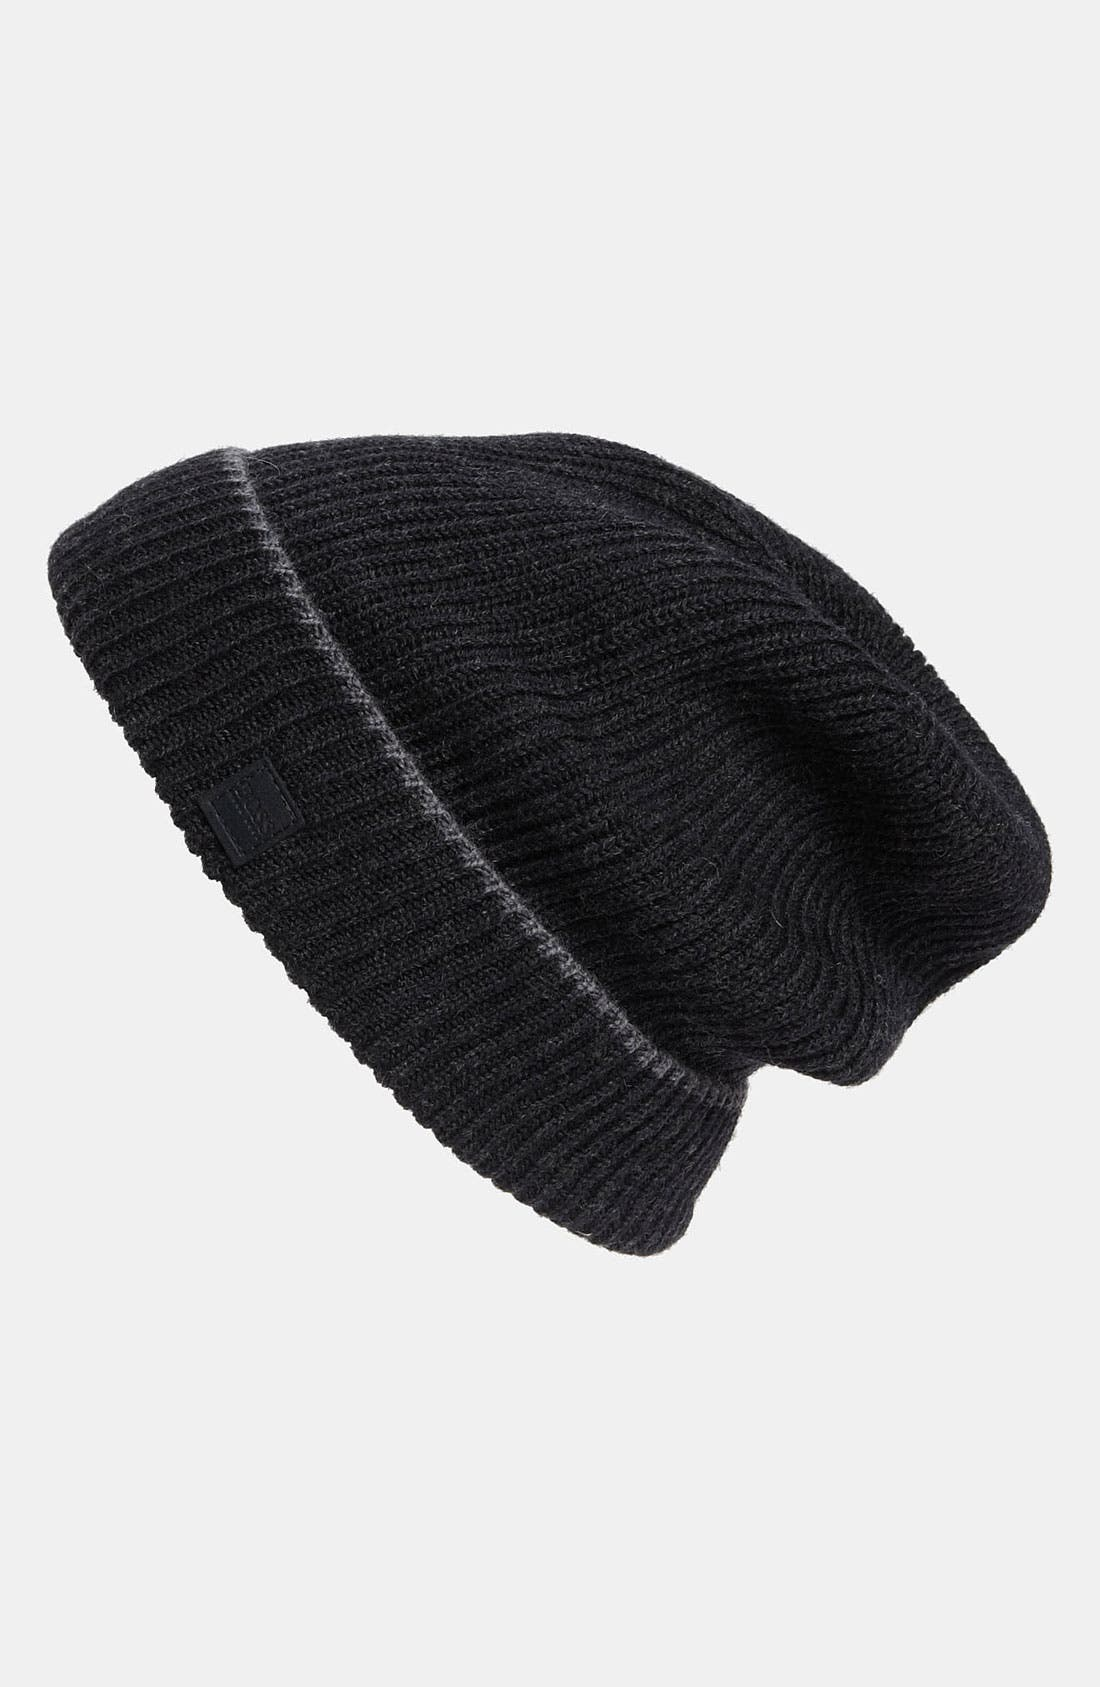 Alternate Image 1 Selected - BOSS Black 'Wotana' Wool Knit Cap